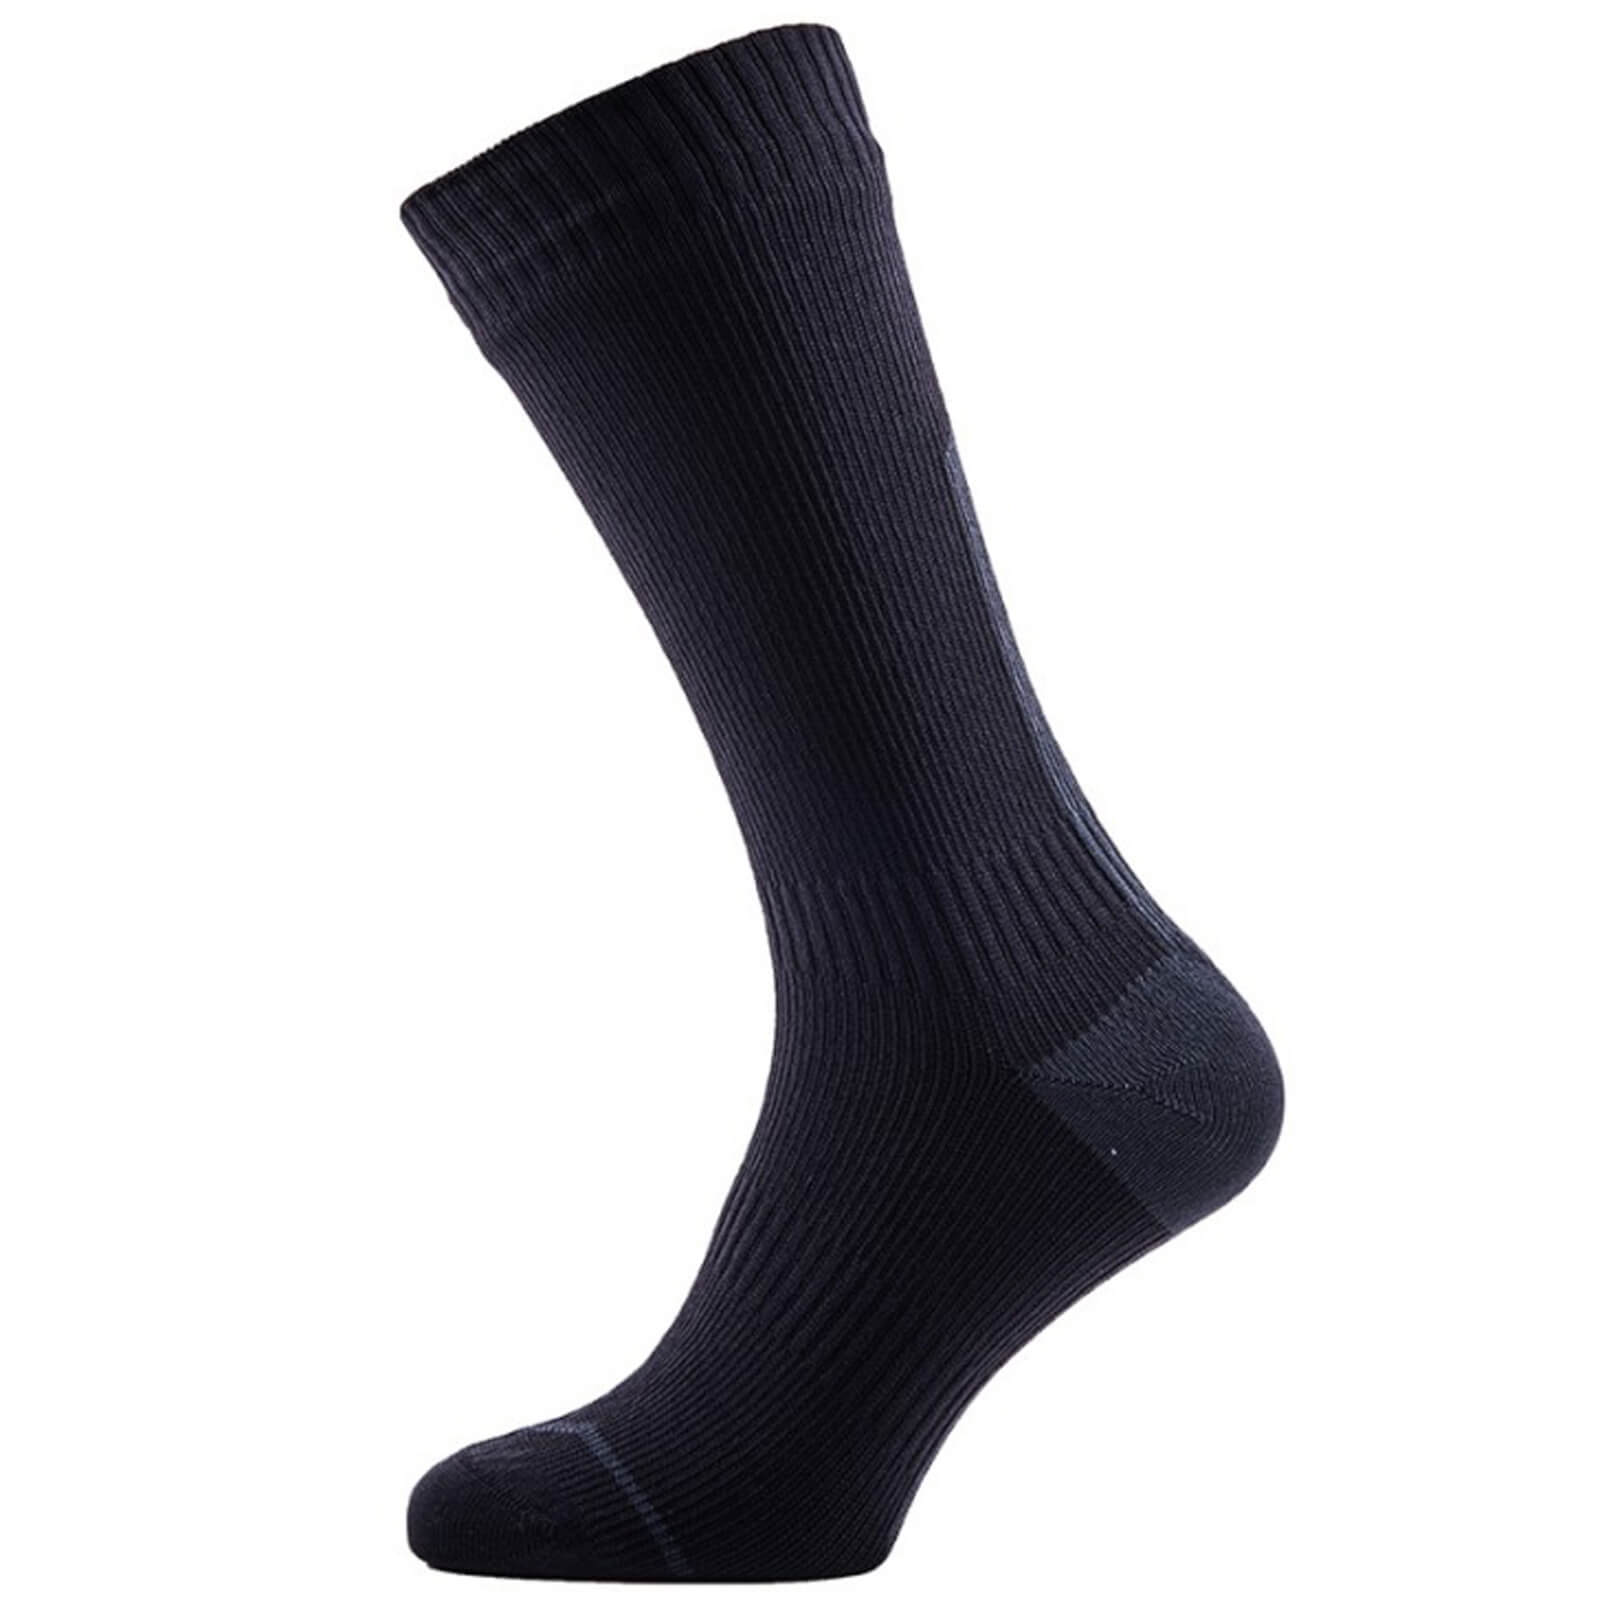 Sealskinz Road Thin Mid Socks with Hydrostop - Black/Yellow - XL